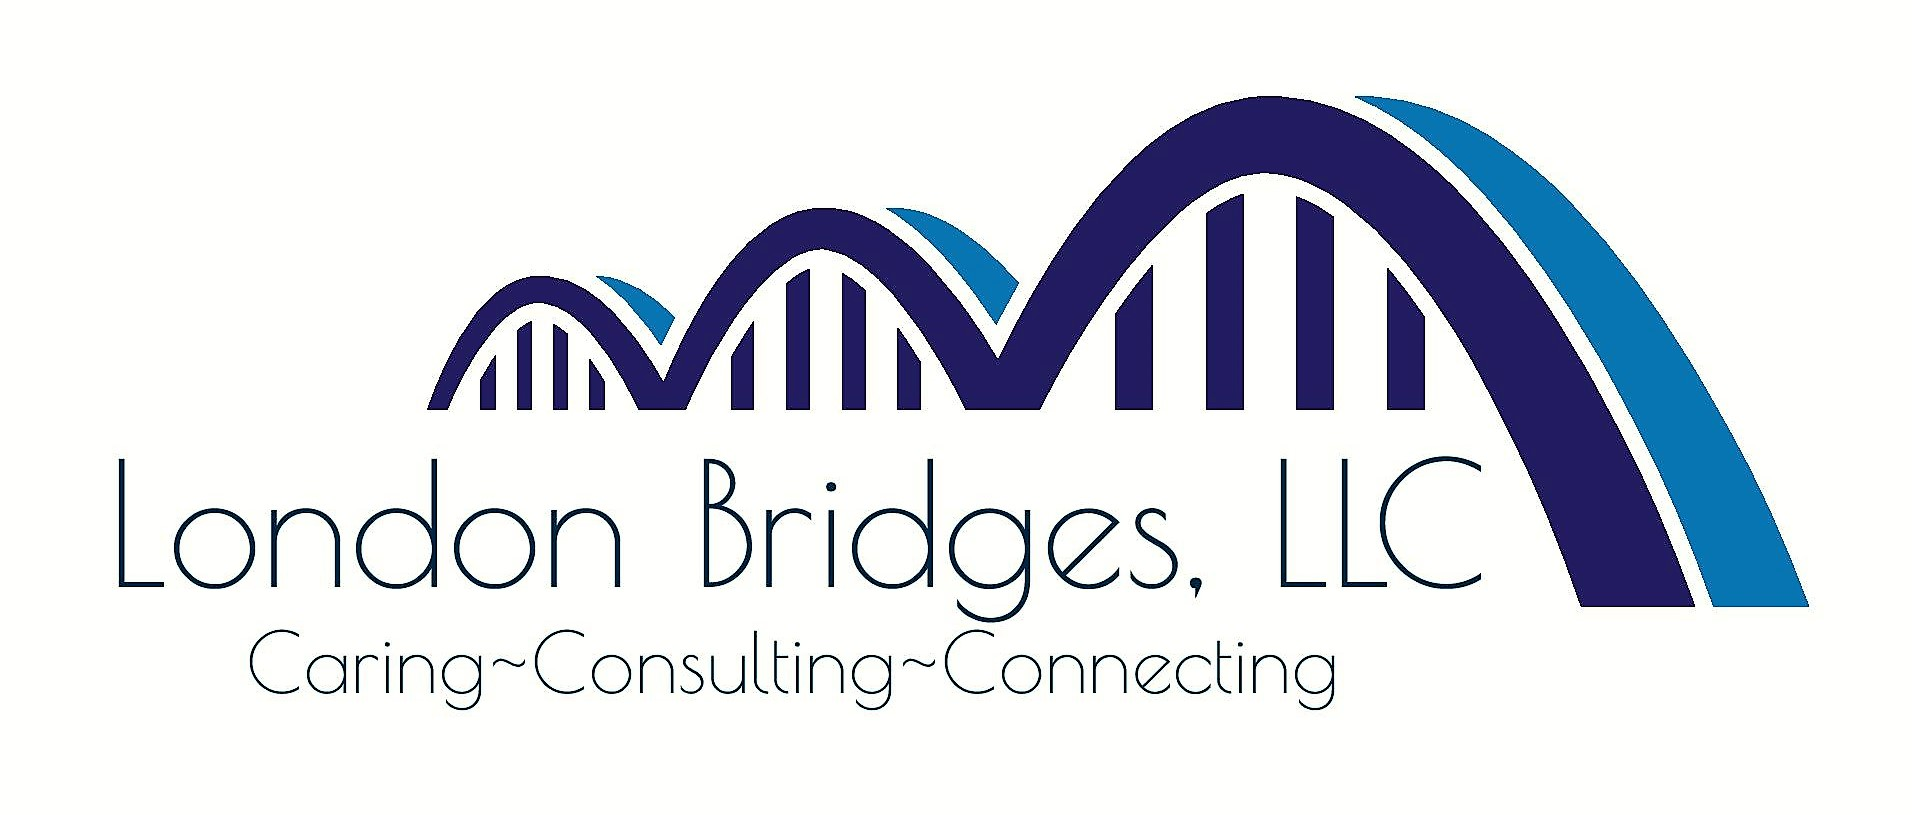 LONDON BRIDGES CONSULTING